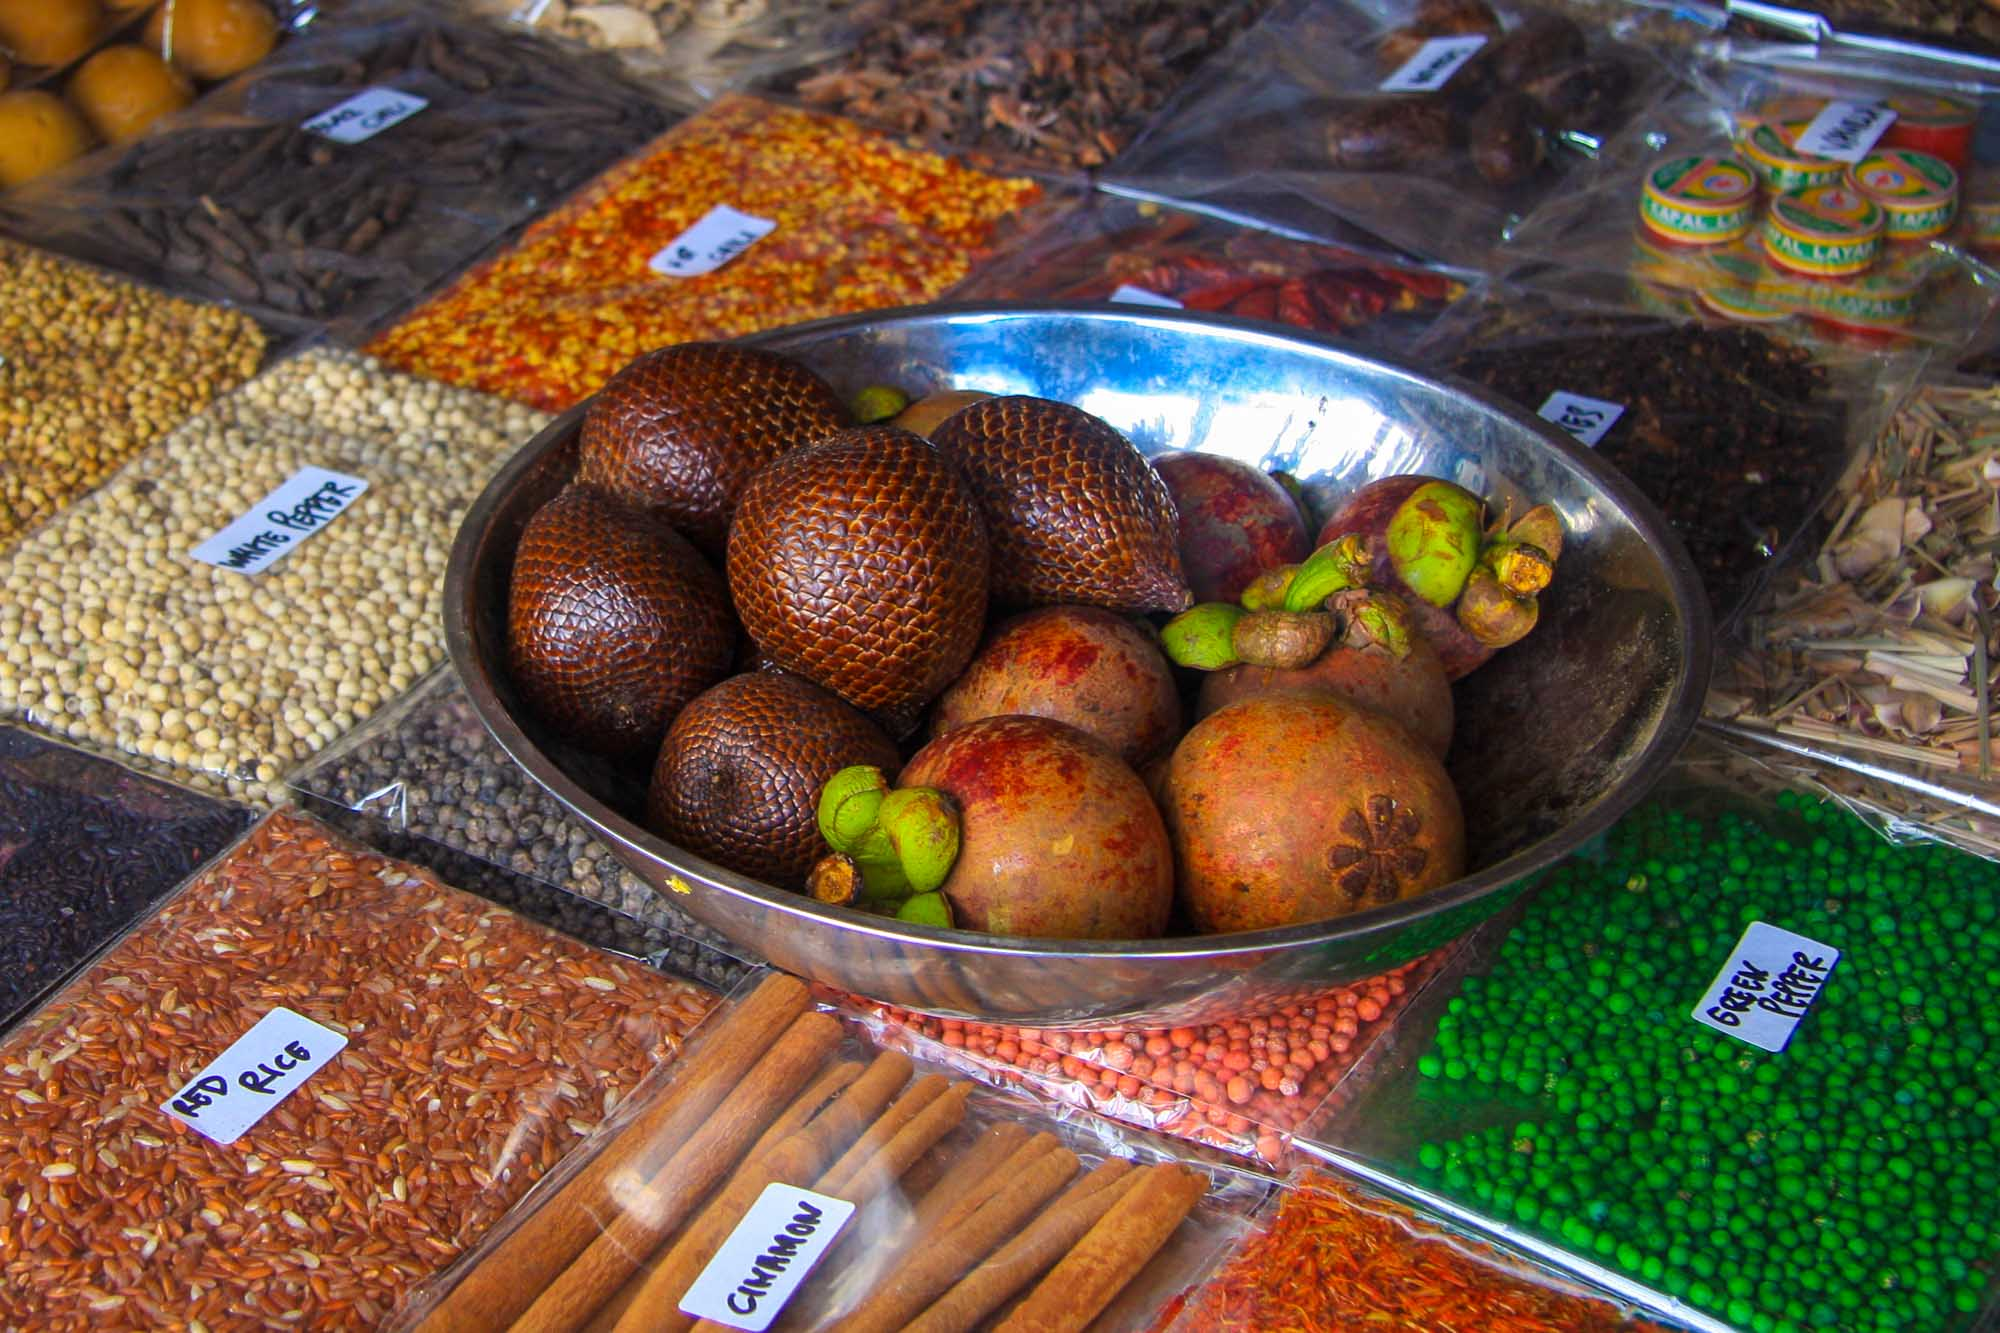 Spices & Fruits in Bali